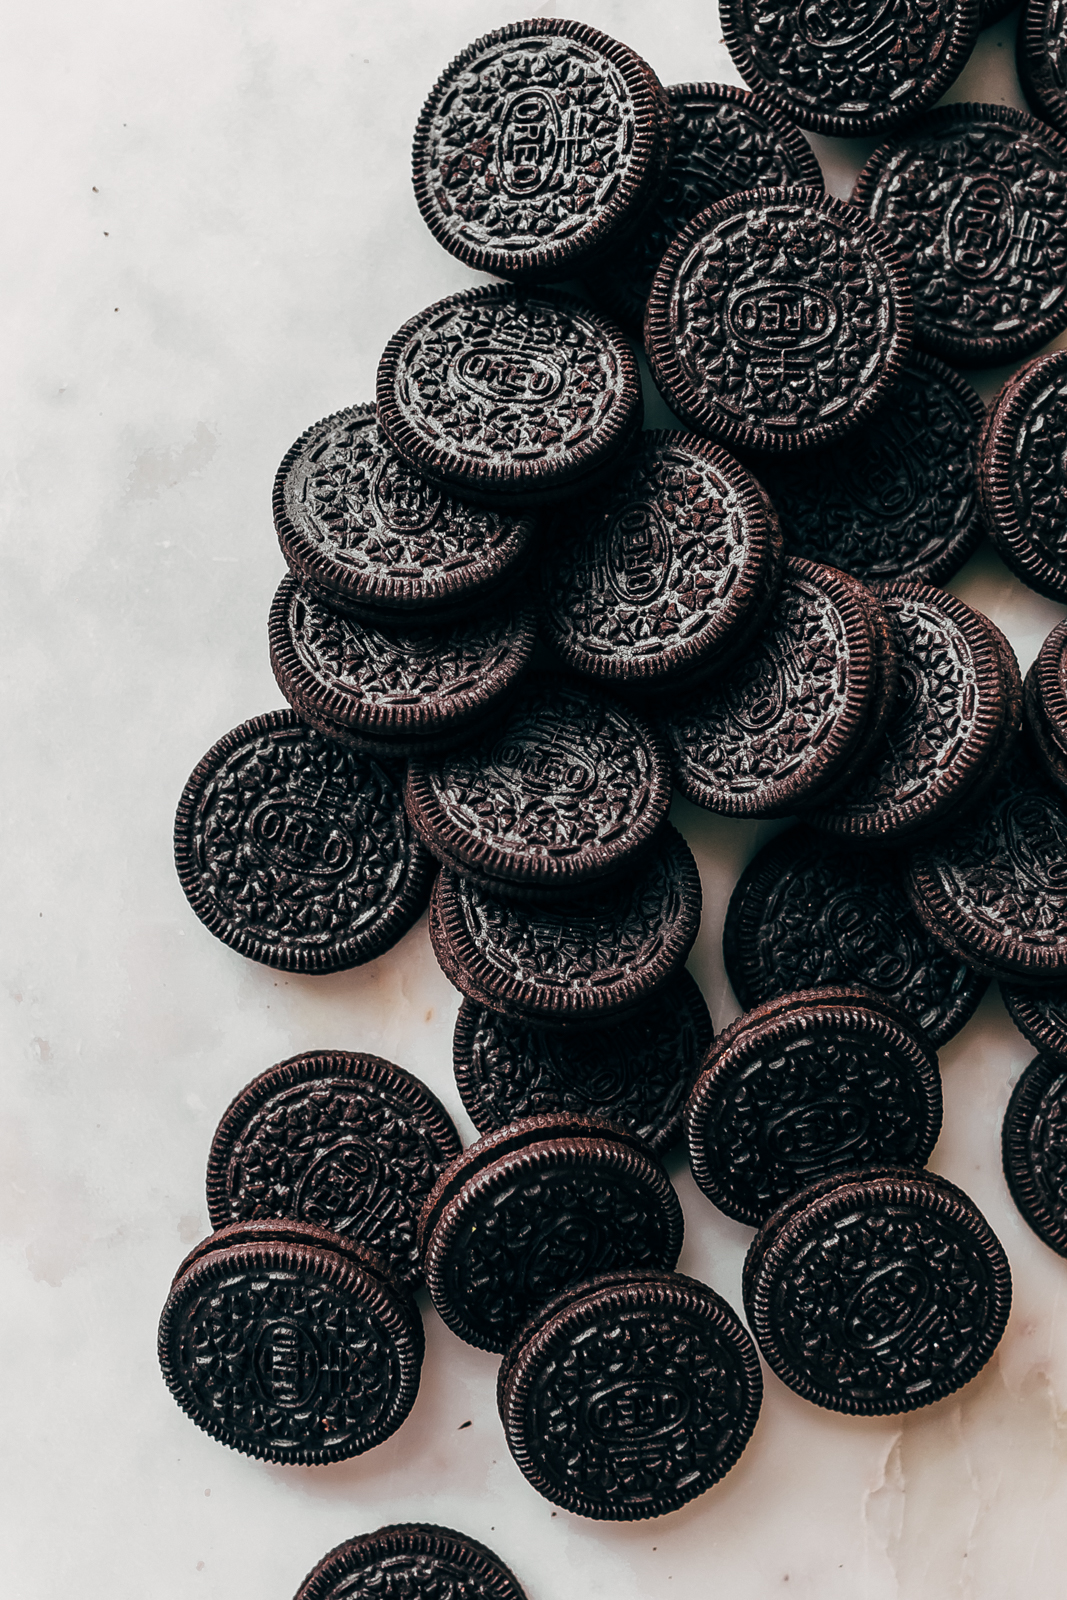 cascading Oreo cookies on white marble surface